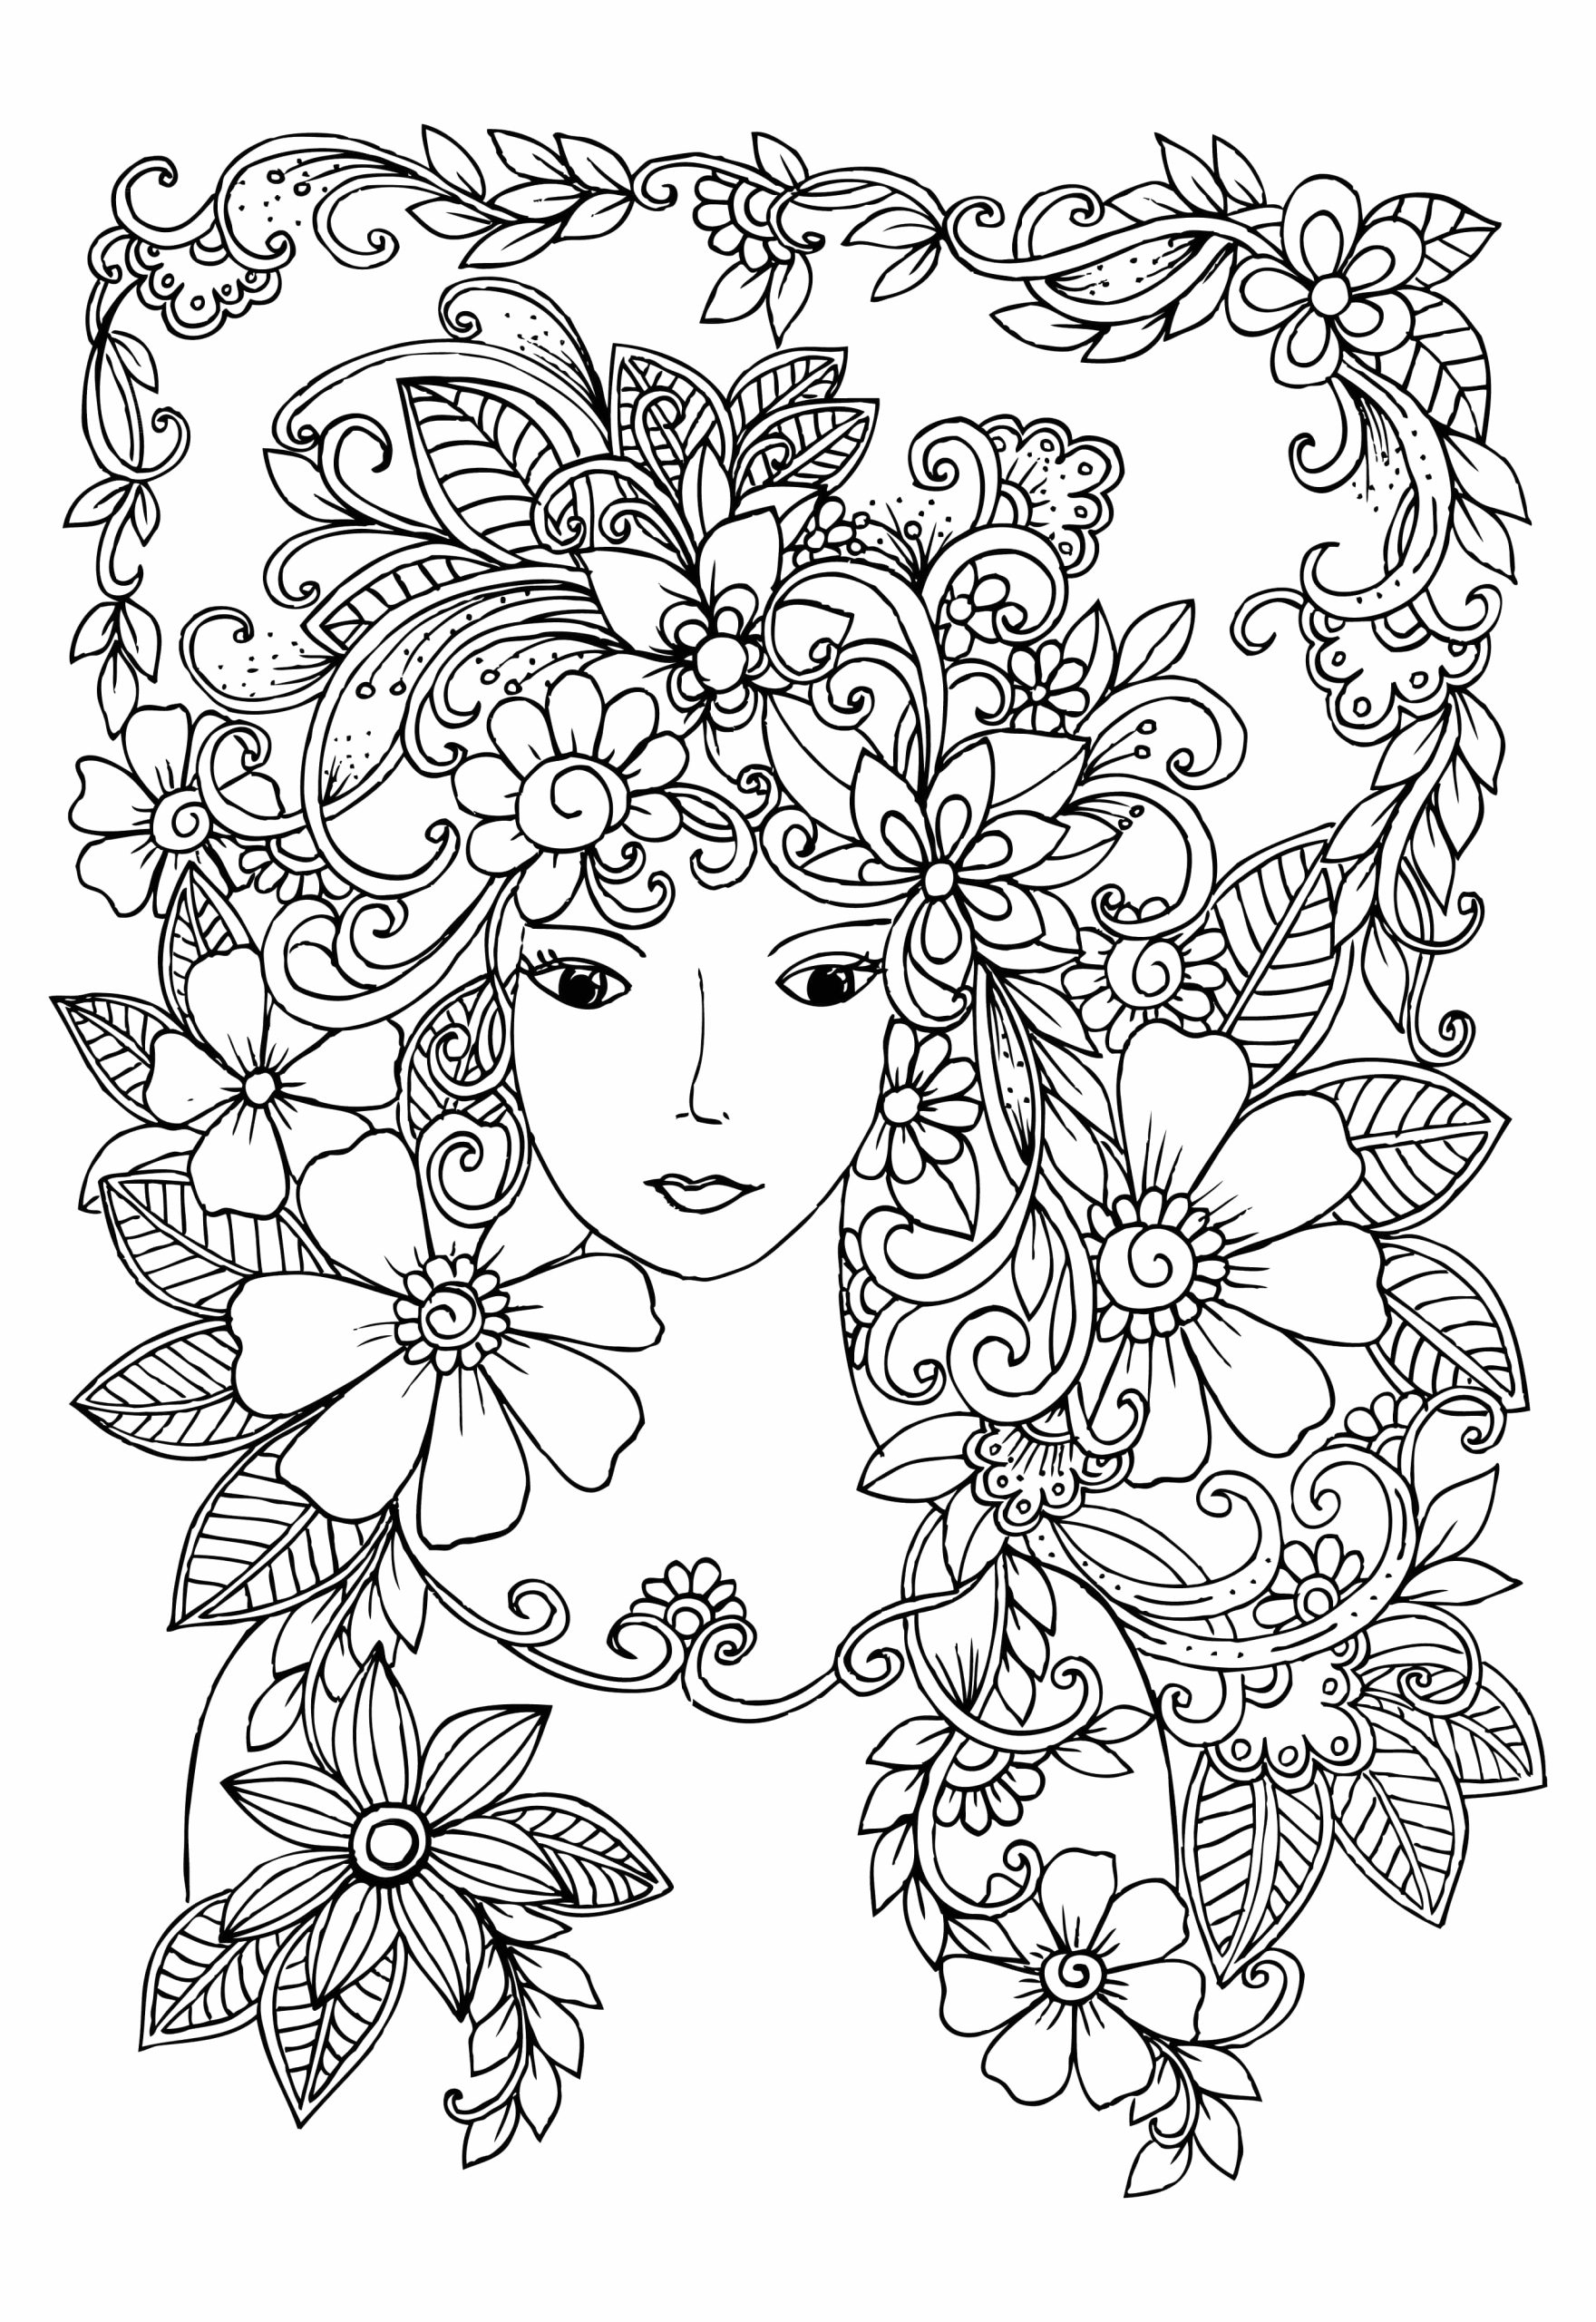 Coloring Pages for 10 12 Year Olds Plex Coloring Pages for 10 to 12 Year Old Girls Print